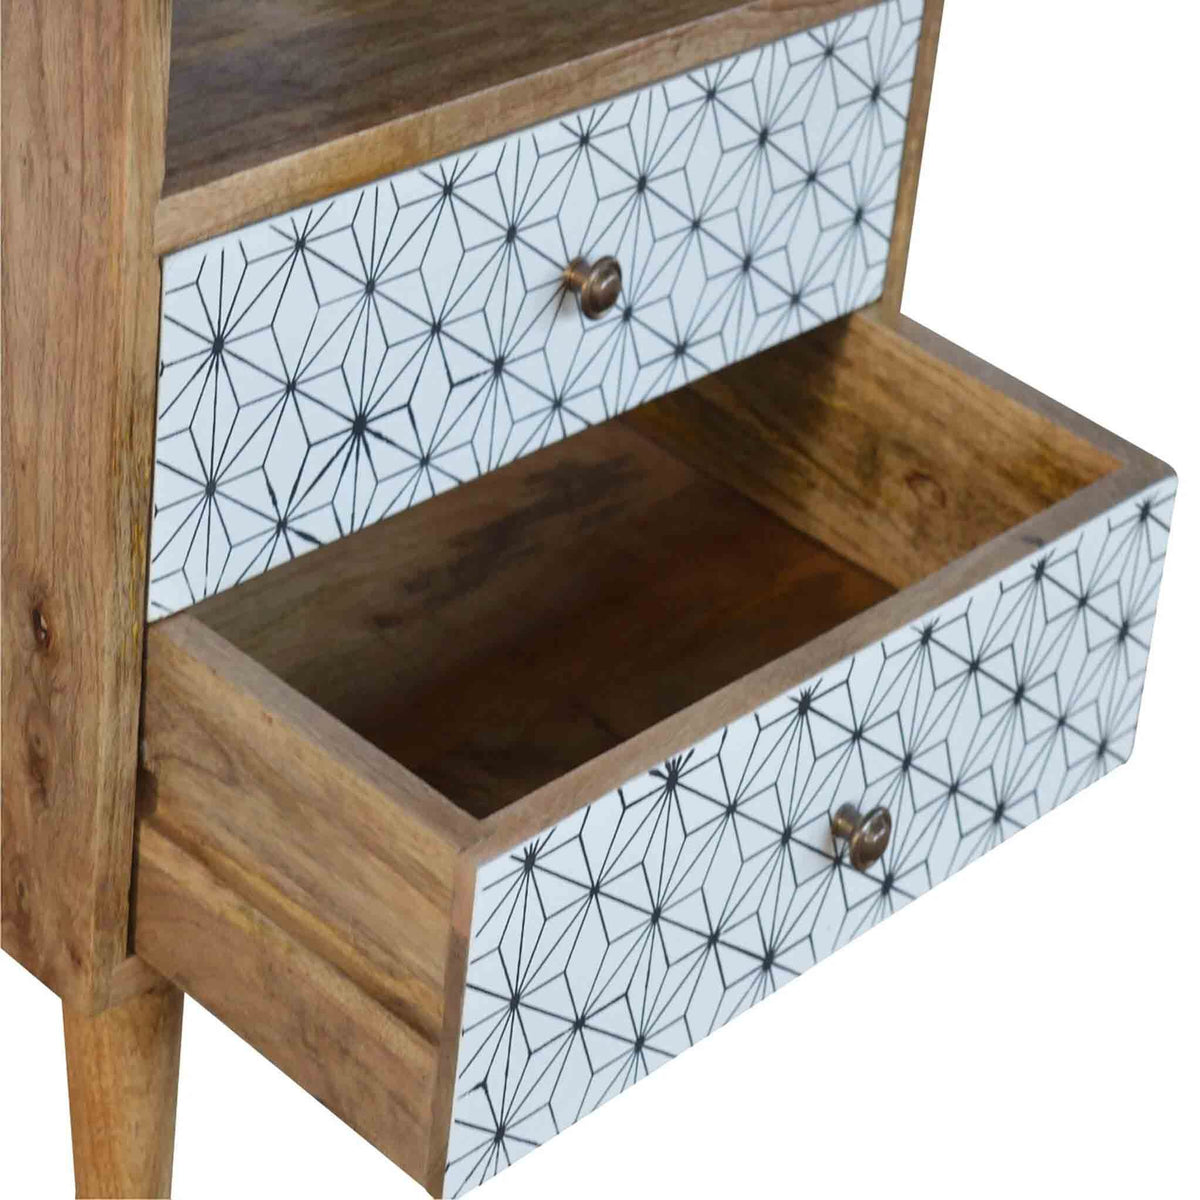 Drawers of Artisan 2 Drawer Geometric Screen-Printed Bedside with Open Slot